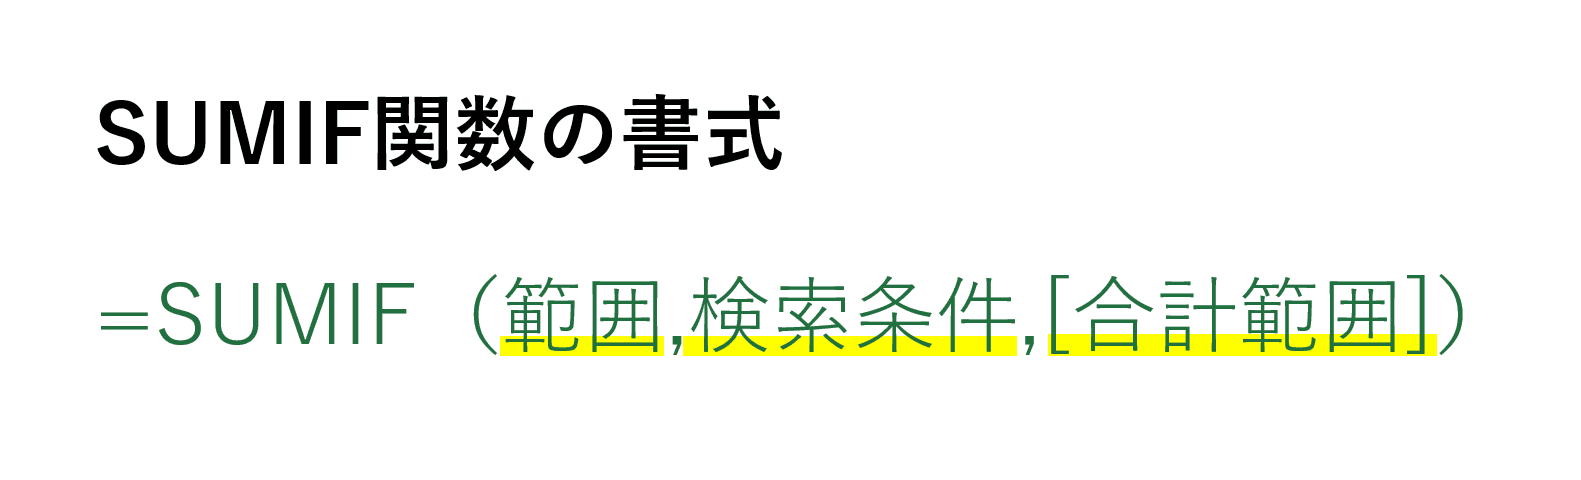 SUMIF関数の書式